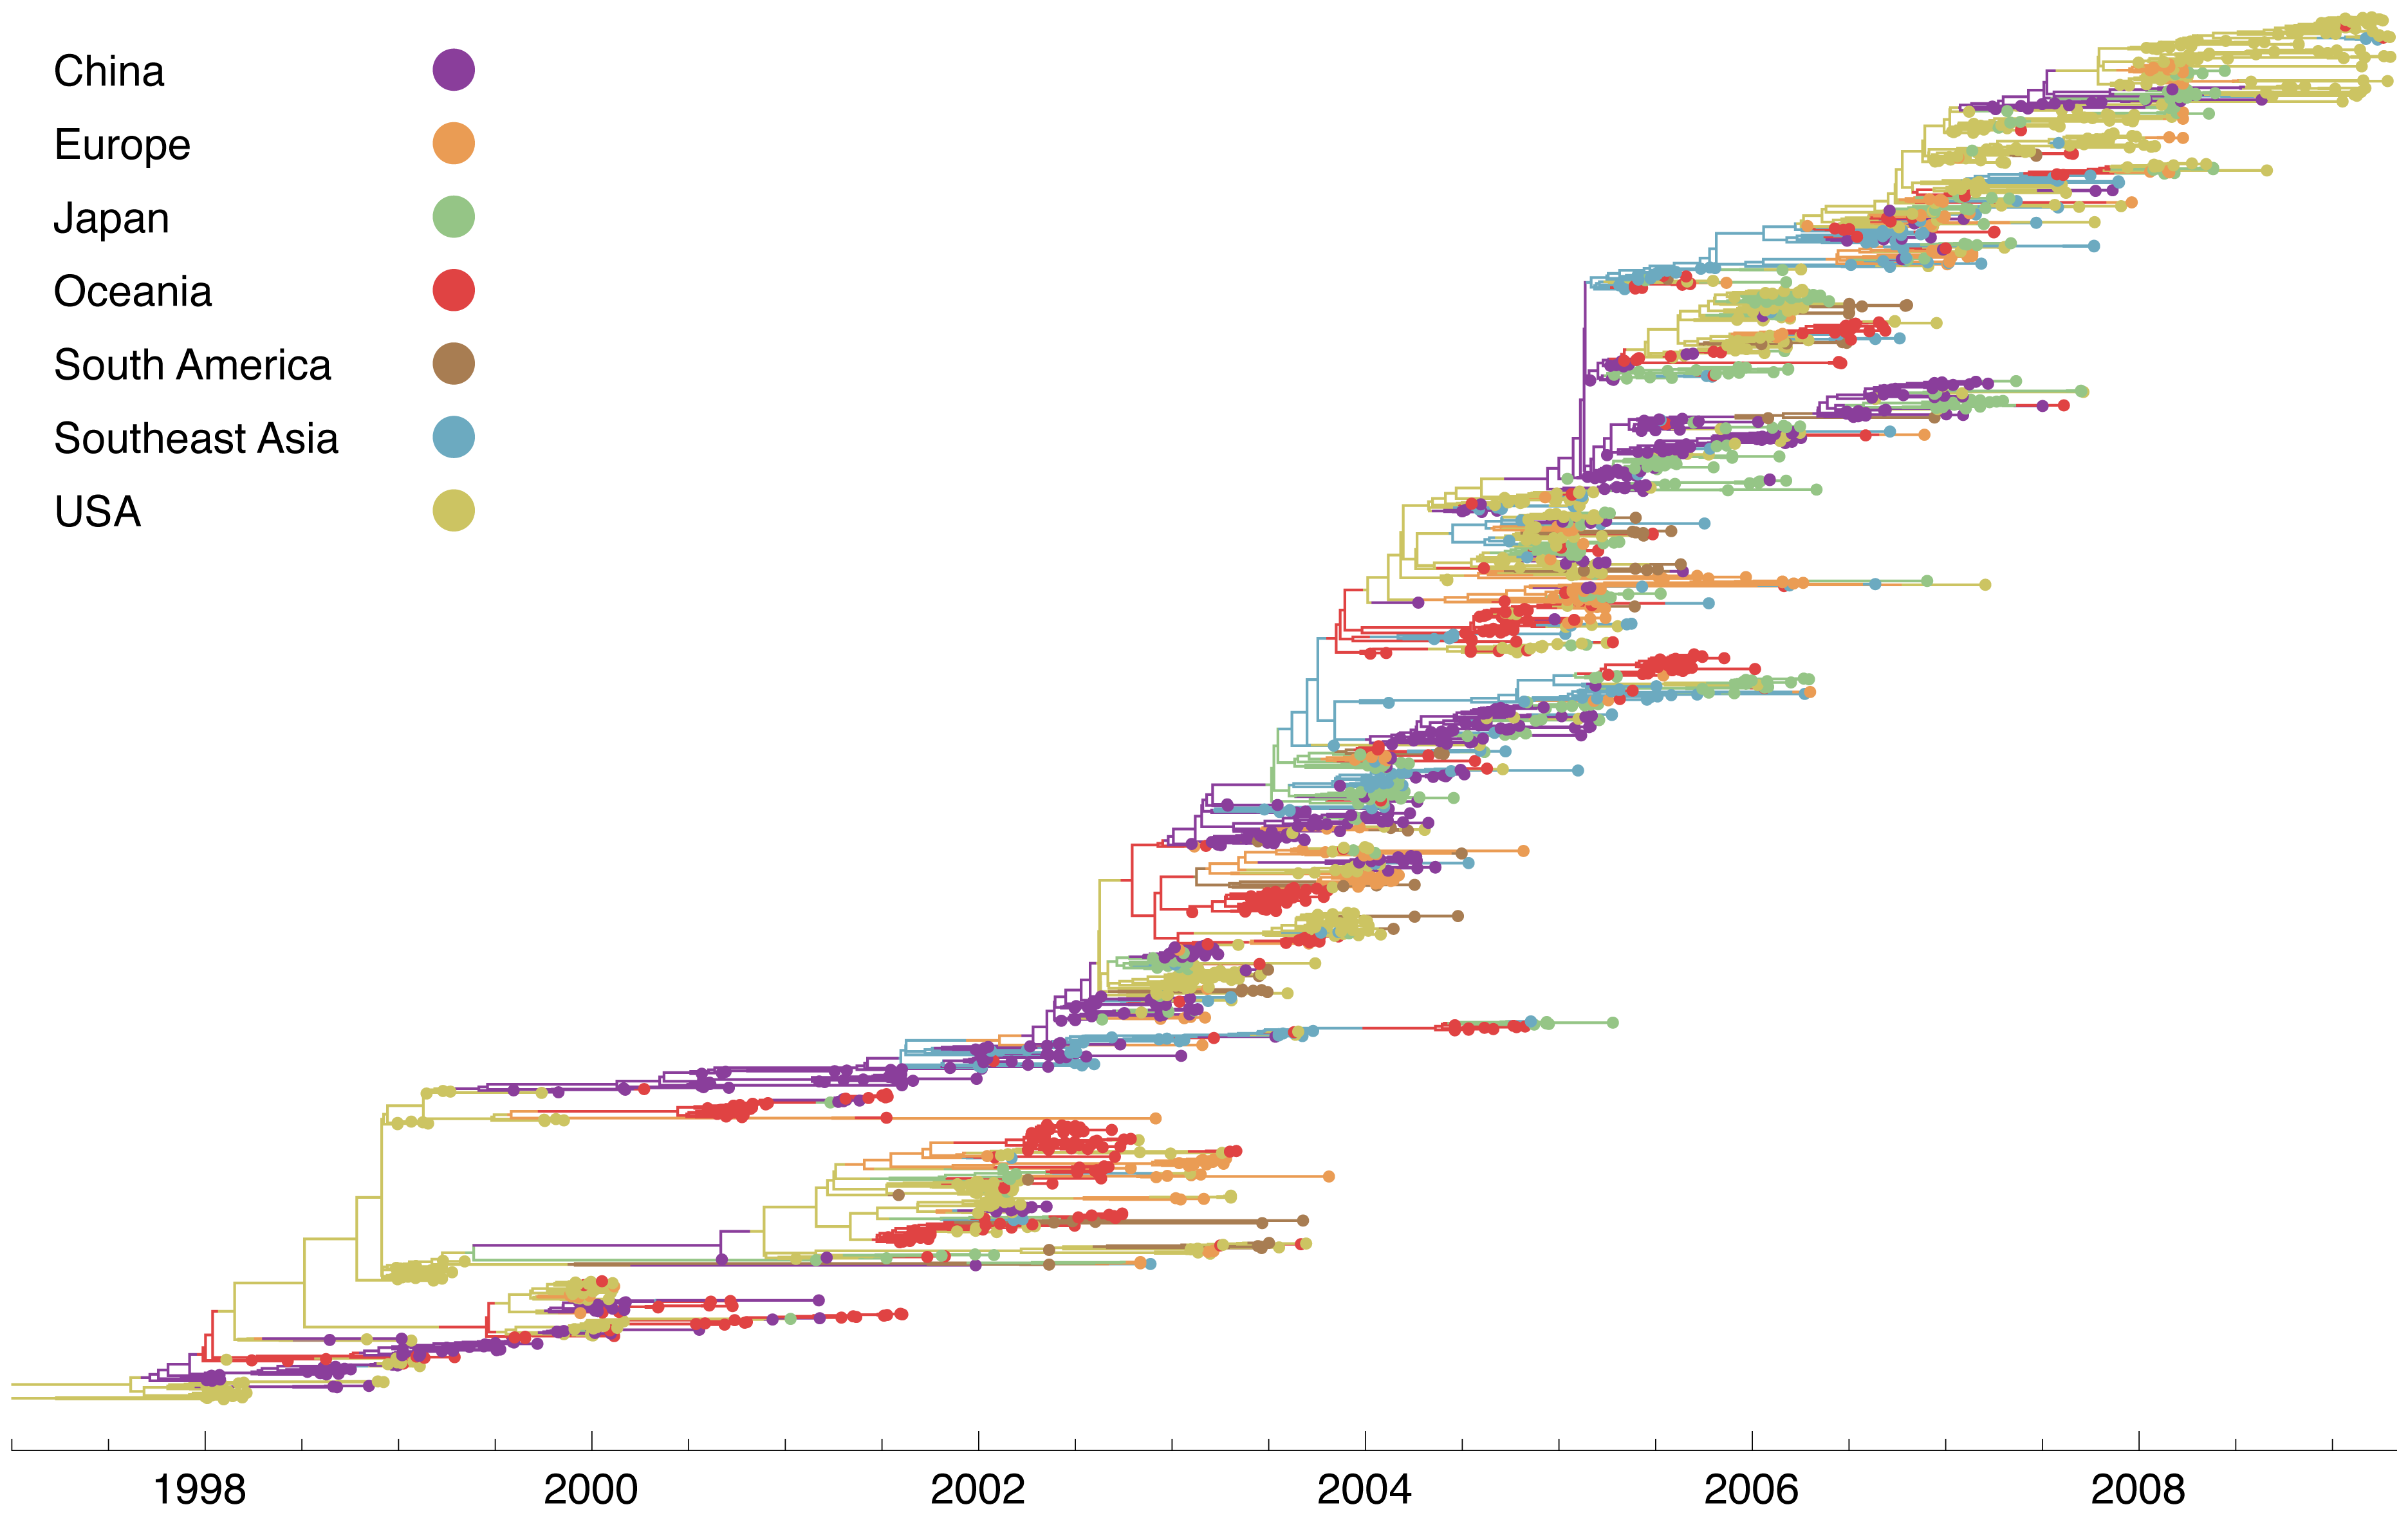 Genealogy of 2165 influenza A (H3N2) viruses sampled from 1998 to 2009.